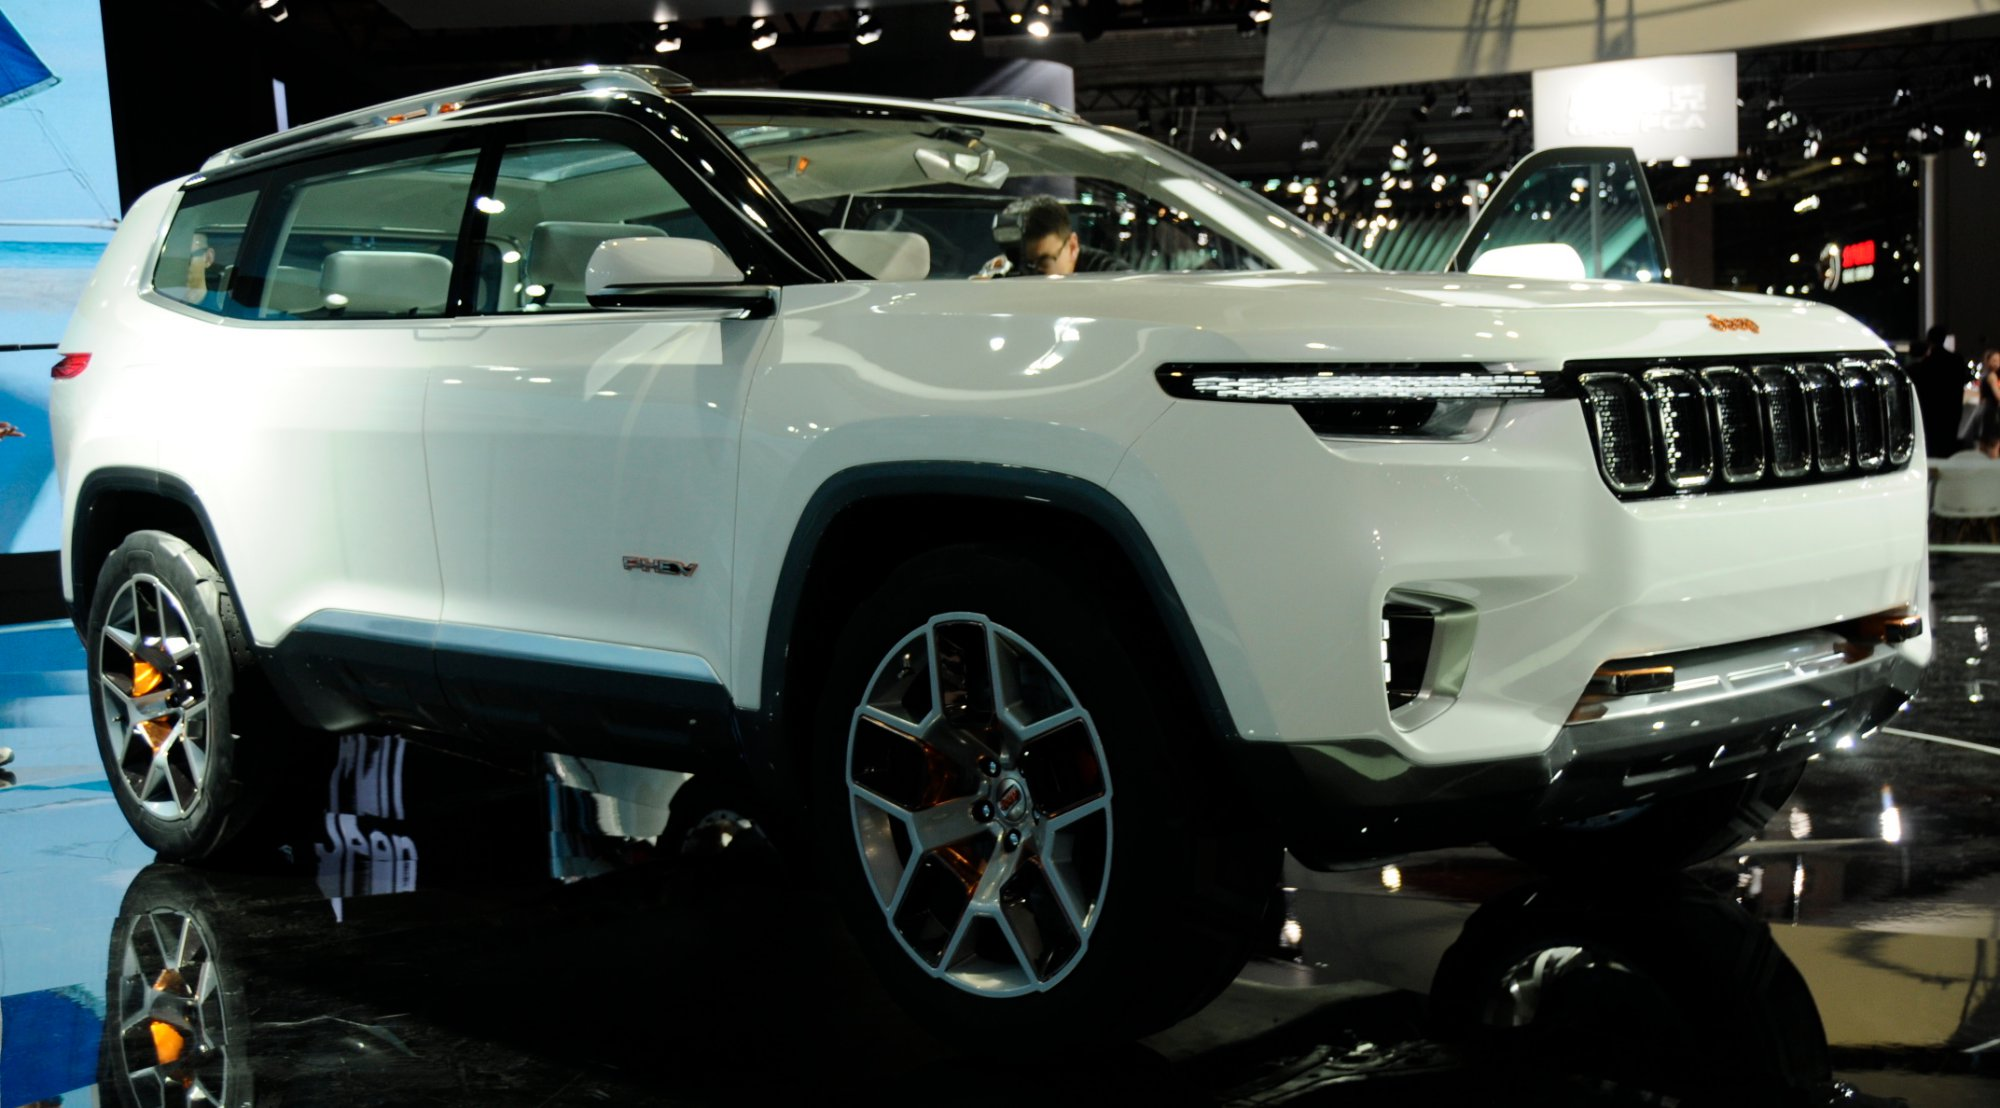 7 Seater Suv 2017 >> News - Jeep Yuntu Concept Previews New 7-Seater